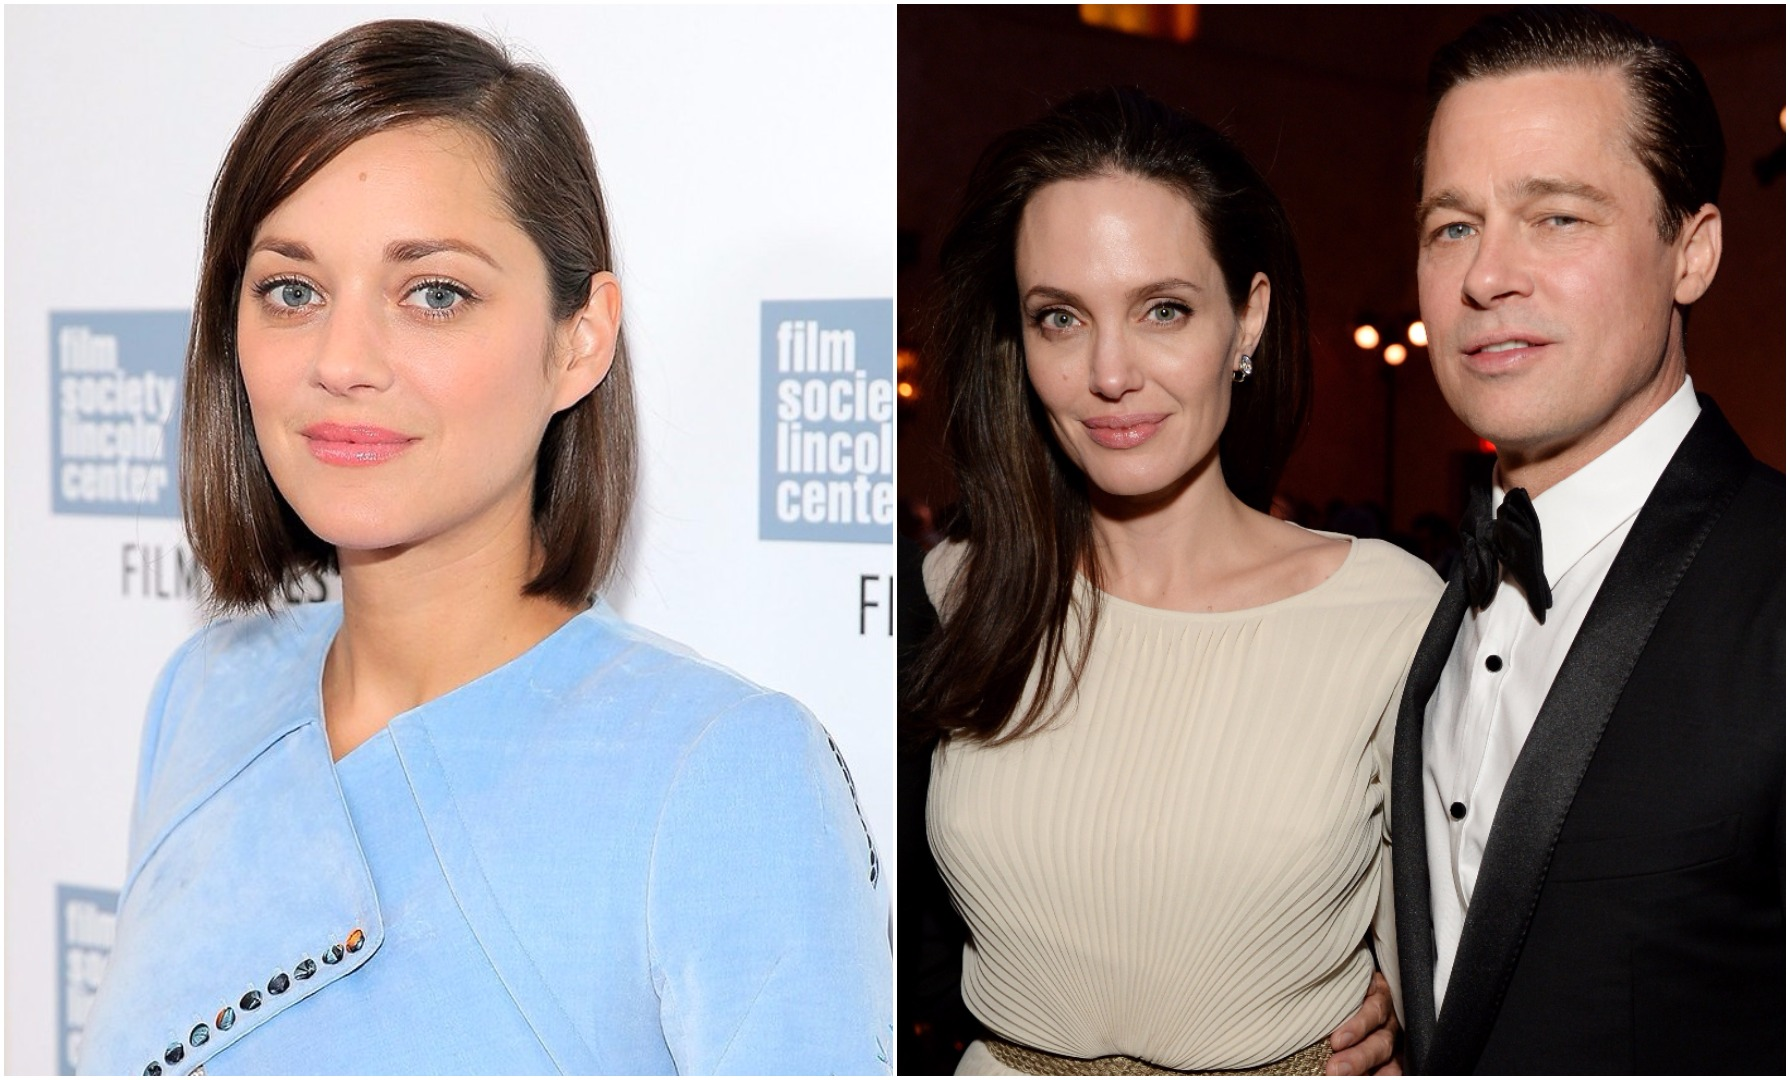 If you're prepared to believe Marion Cotillard would bother breaking up Brad Pitt and Angelina Jolie, shame on you